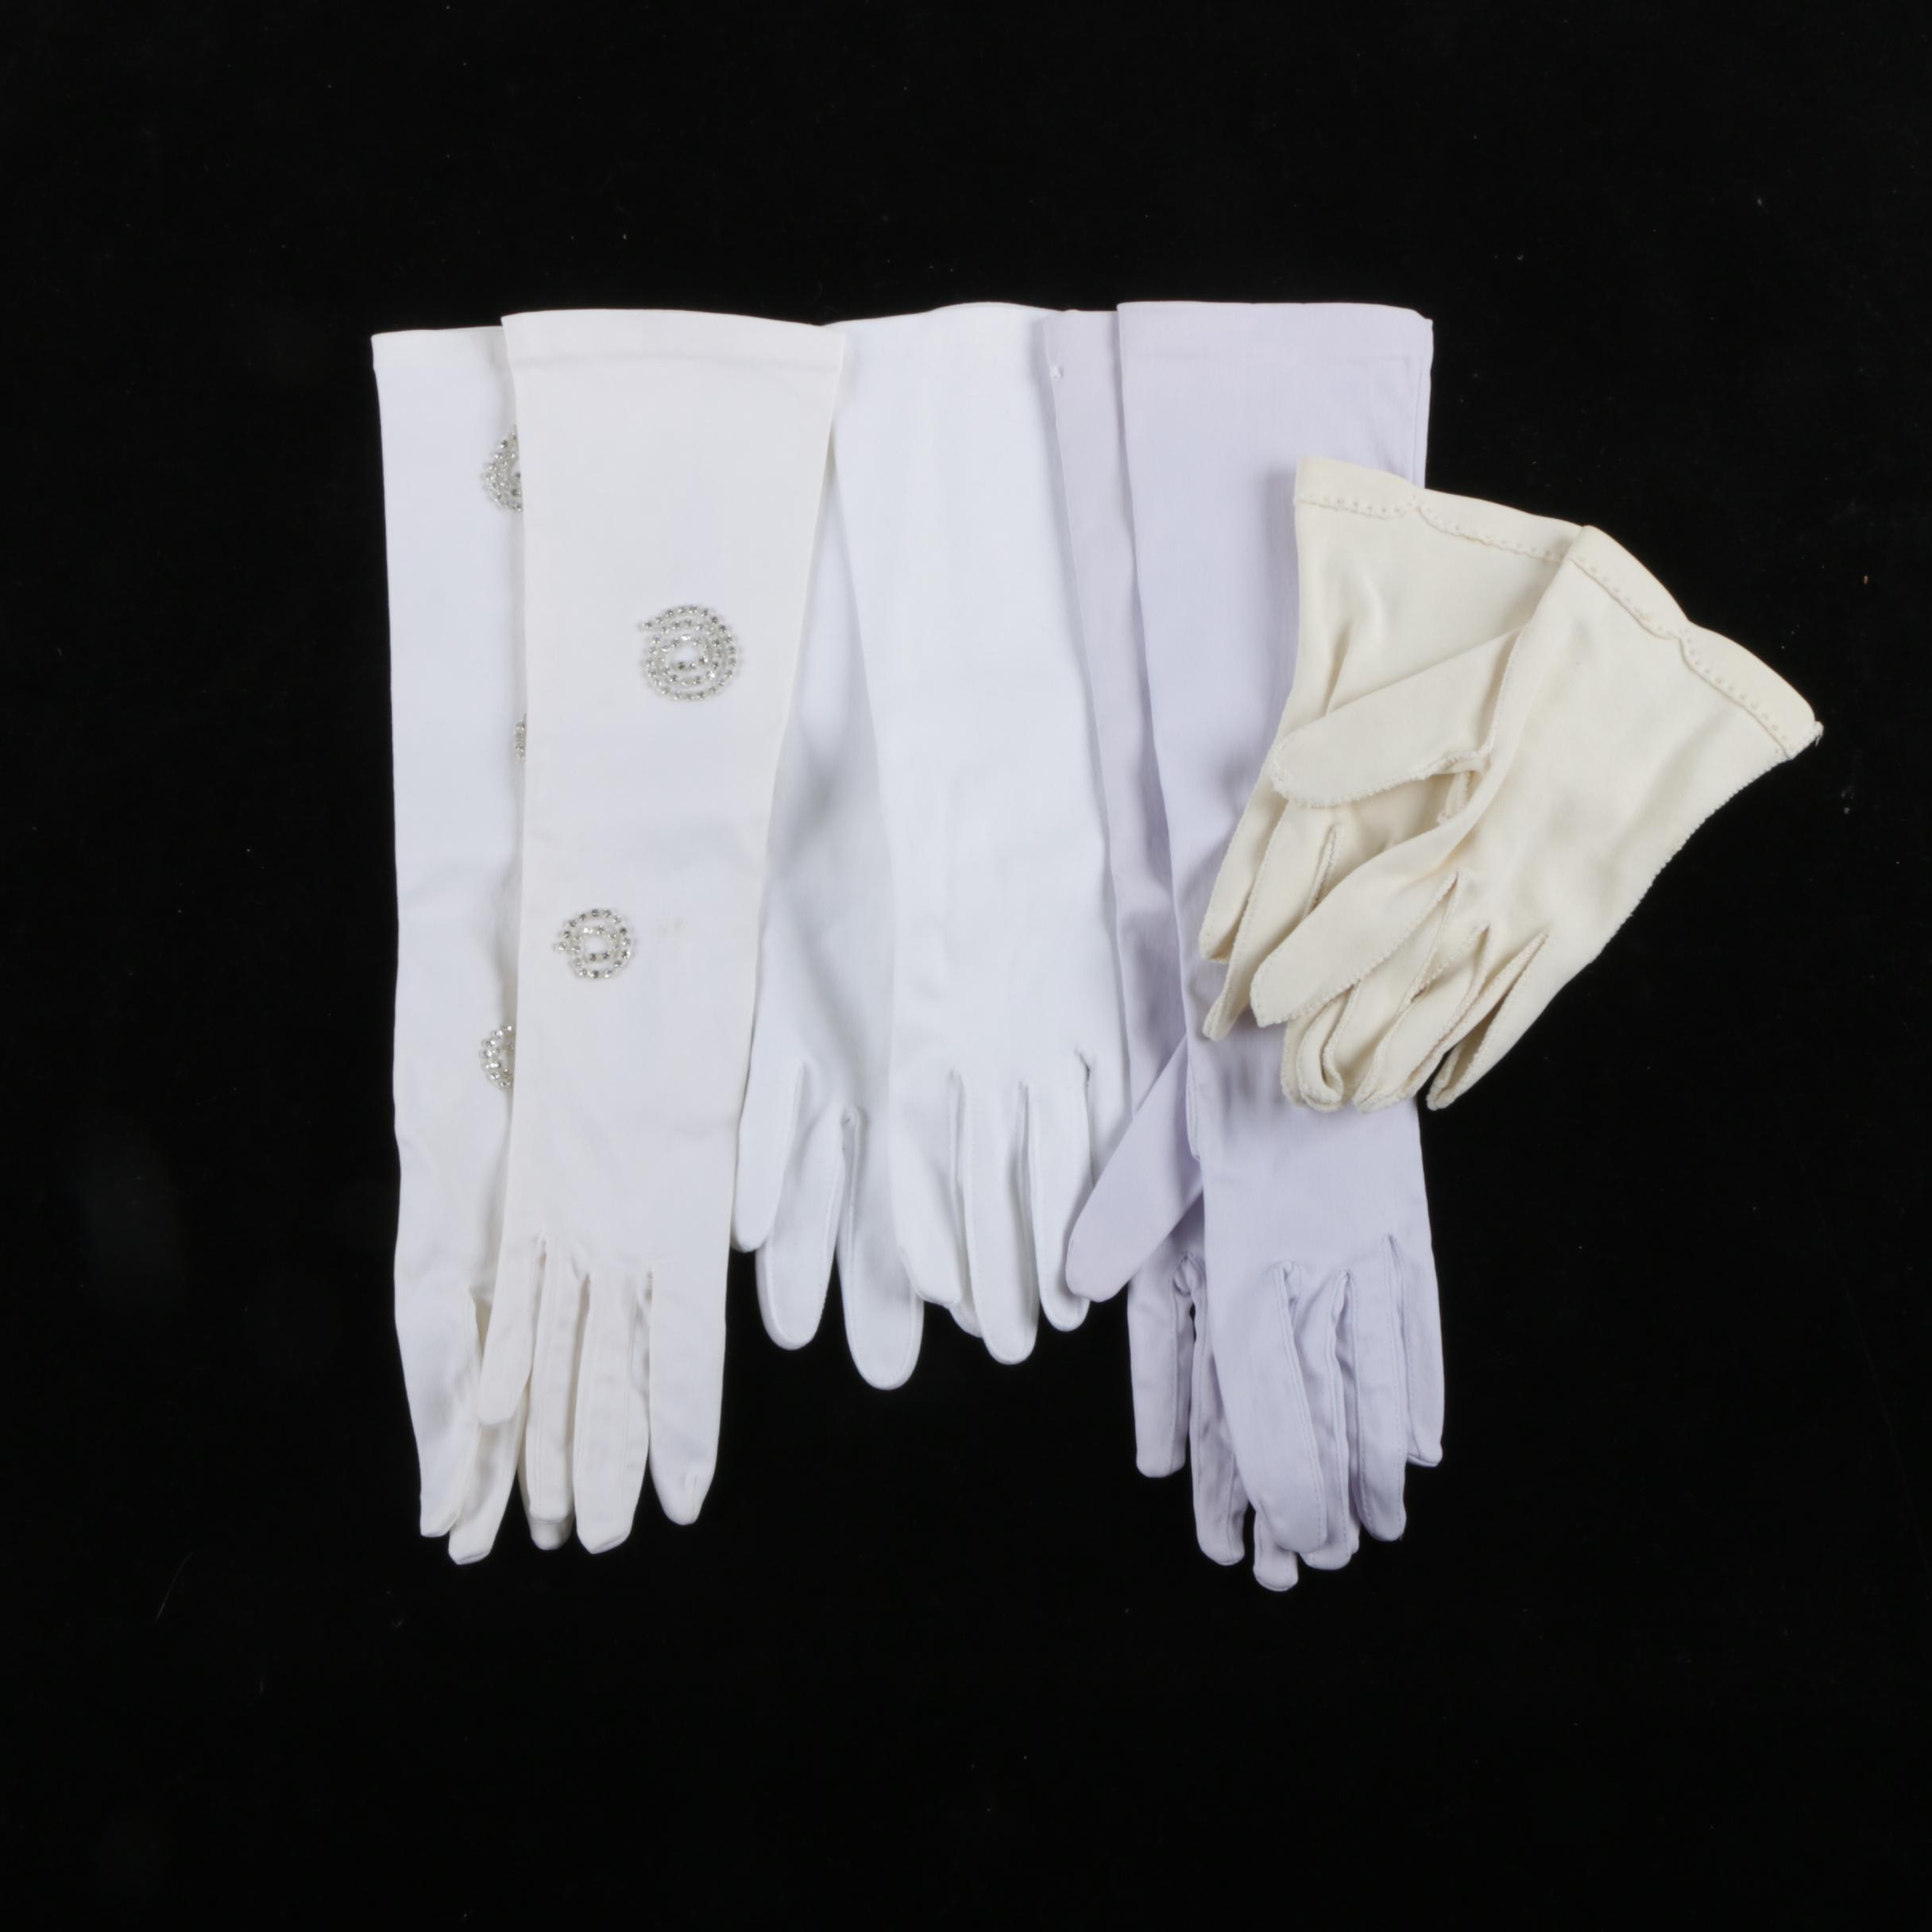 1960s Vintage White and Pastel Summer Gloves Including Rhinestones